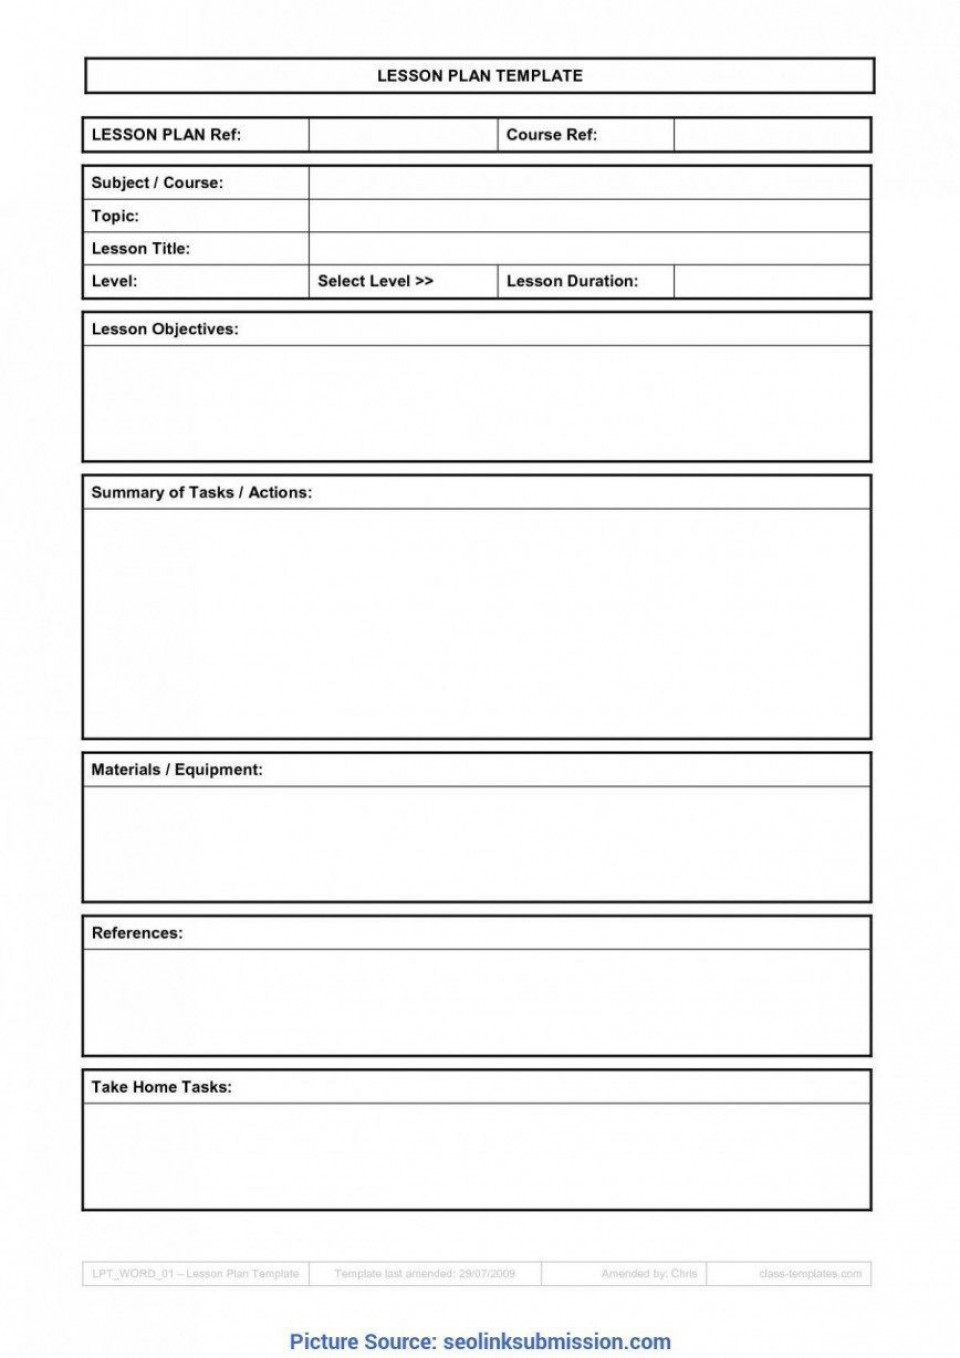 007 Top Weekly Lesson Plan Template Google Doc Sample  Ubd Siop960